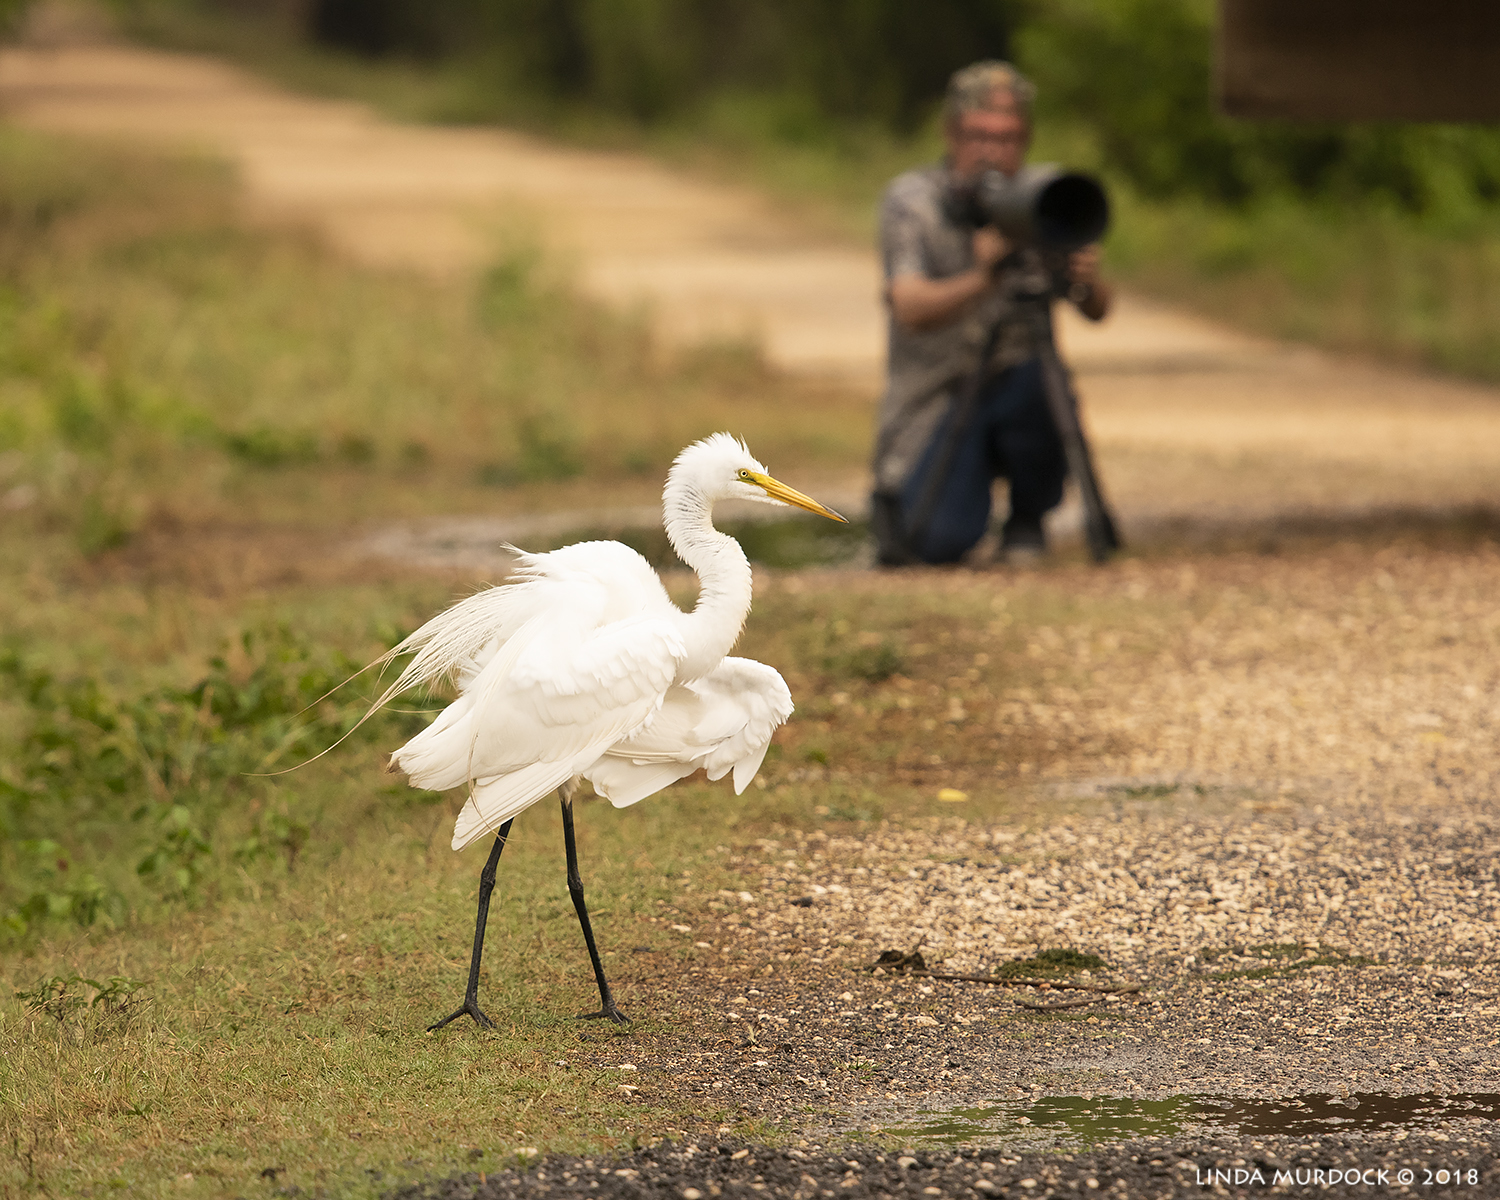 Bill and a Great Egret next to the Observation Tower   Nikon D810 with NIKKOR 300mm f/4E PF + Nikon 1.4x TC ~ 1/1250   sec f/7.1 ISO 1600; hand-held